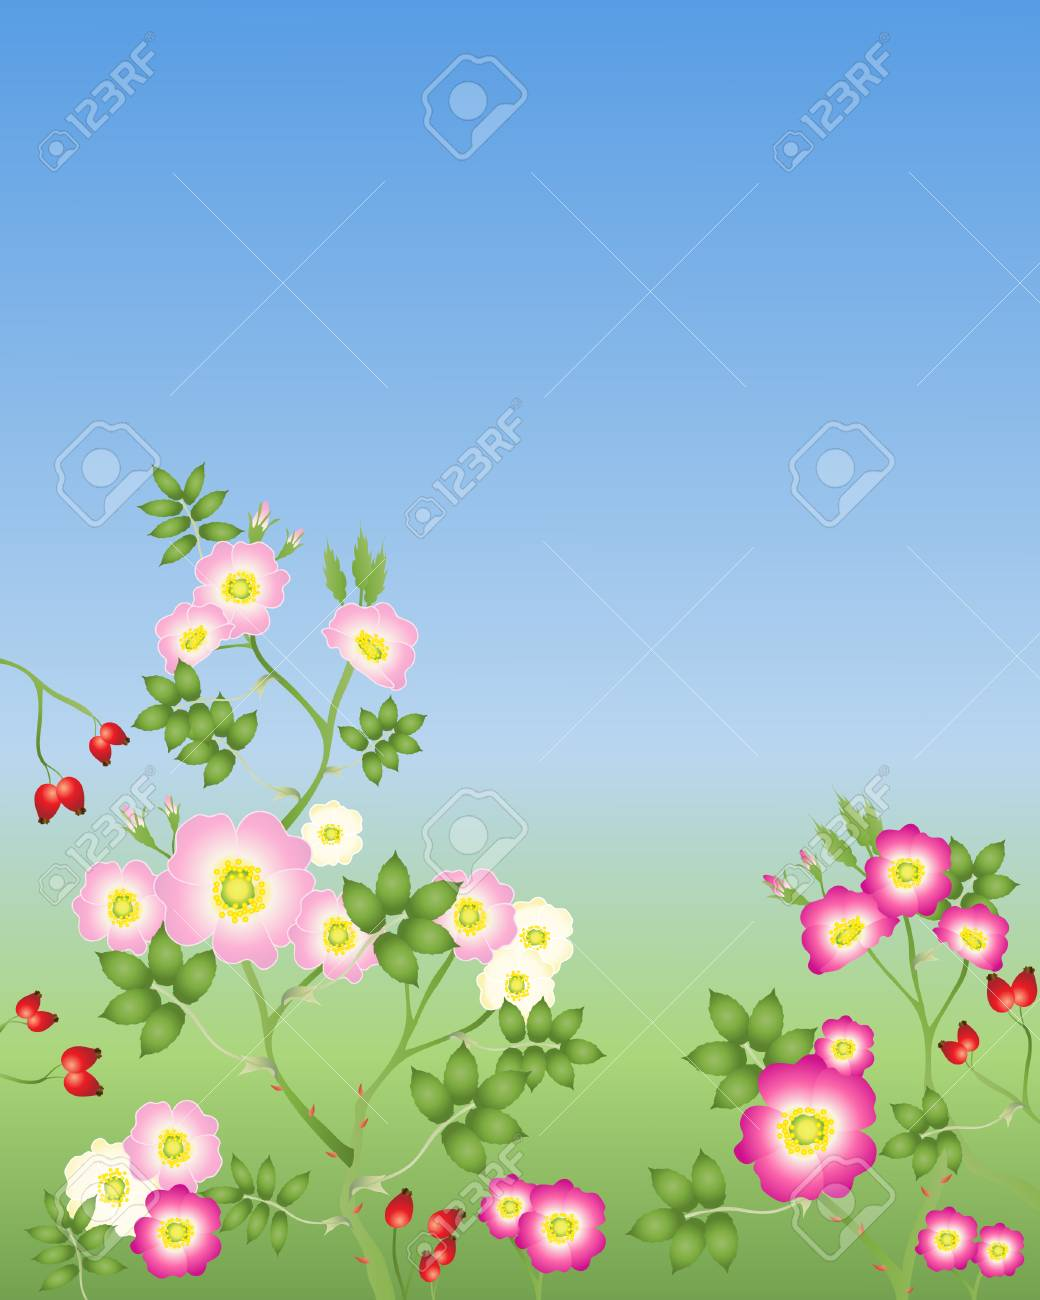 an illustration of wild roses in various shades of pink with buds and rose hips on a green and blue background Stock Vector - 8458027